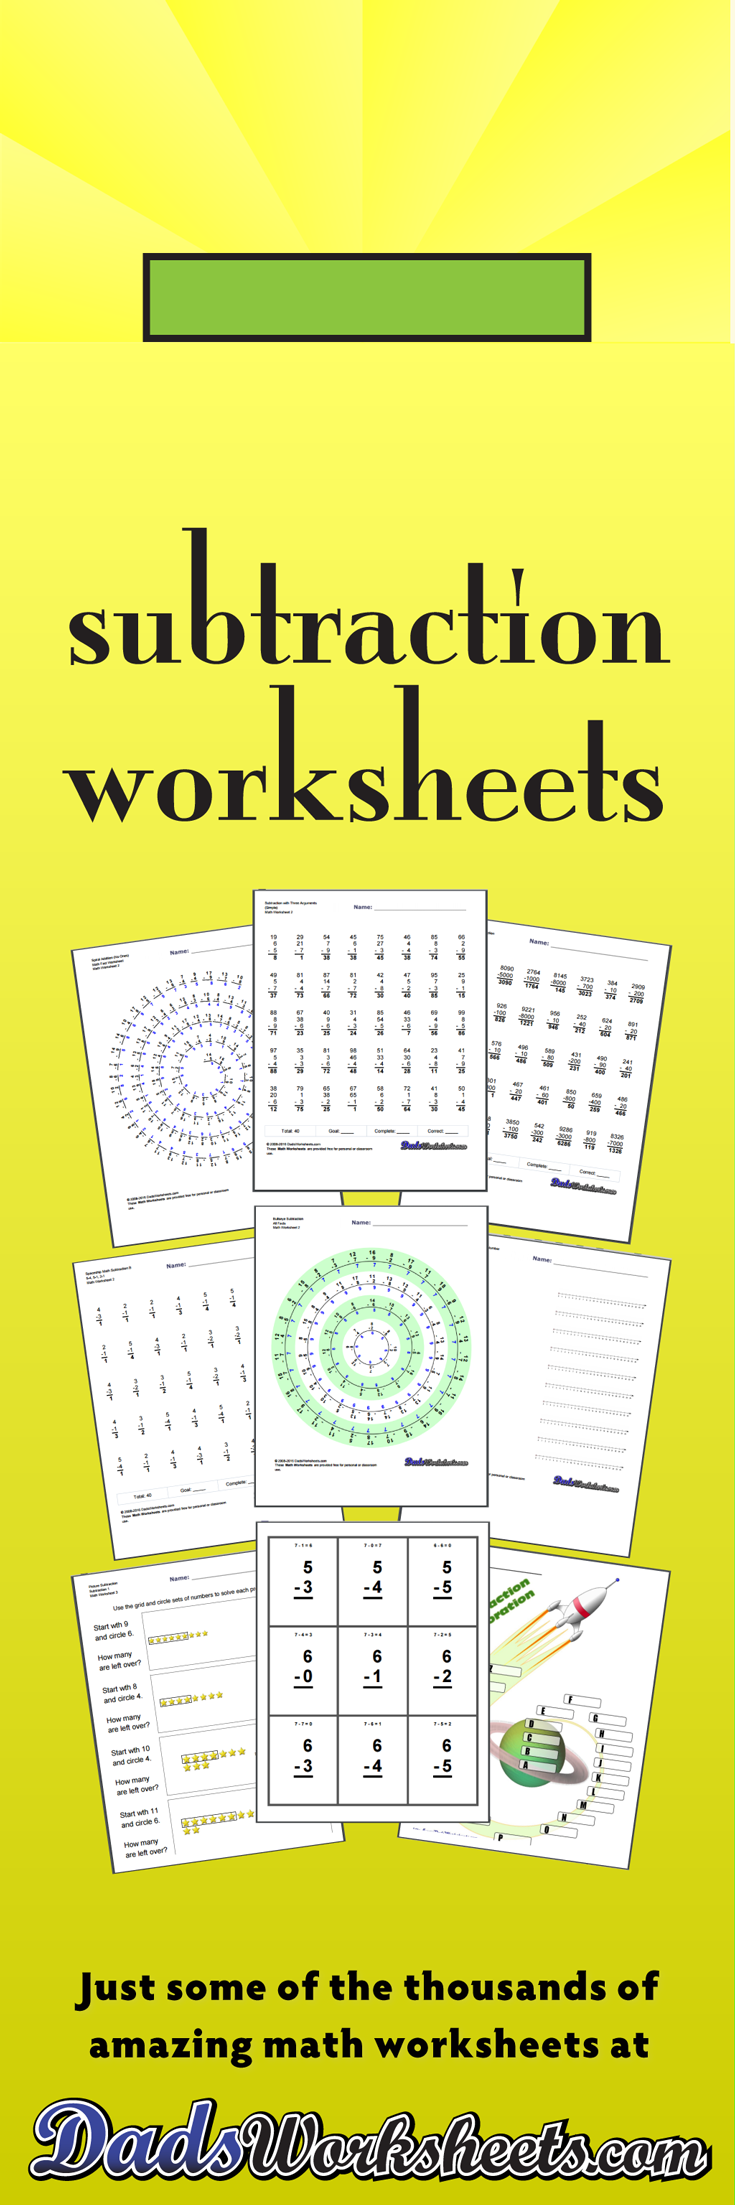 medium resolution of Printable Subtraction Worksheets with Answer Keys! Timed tests